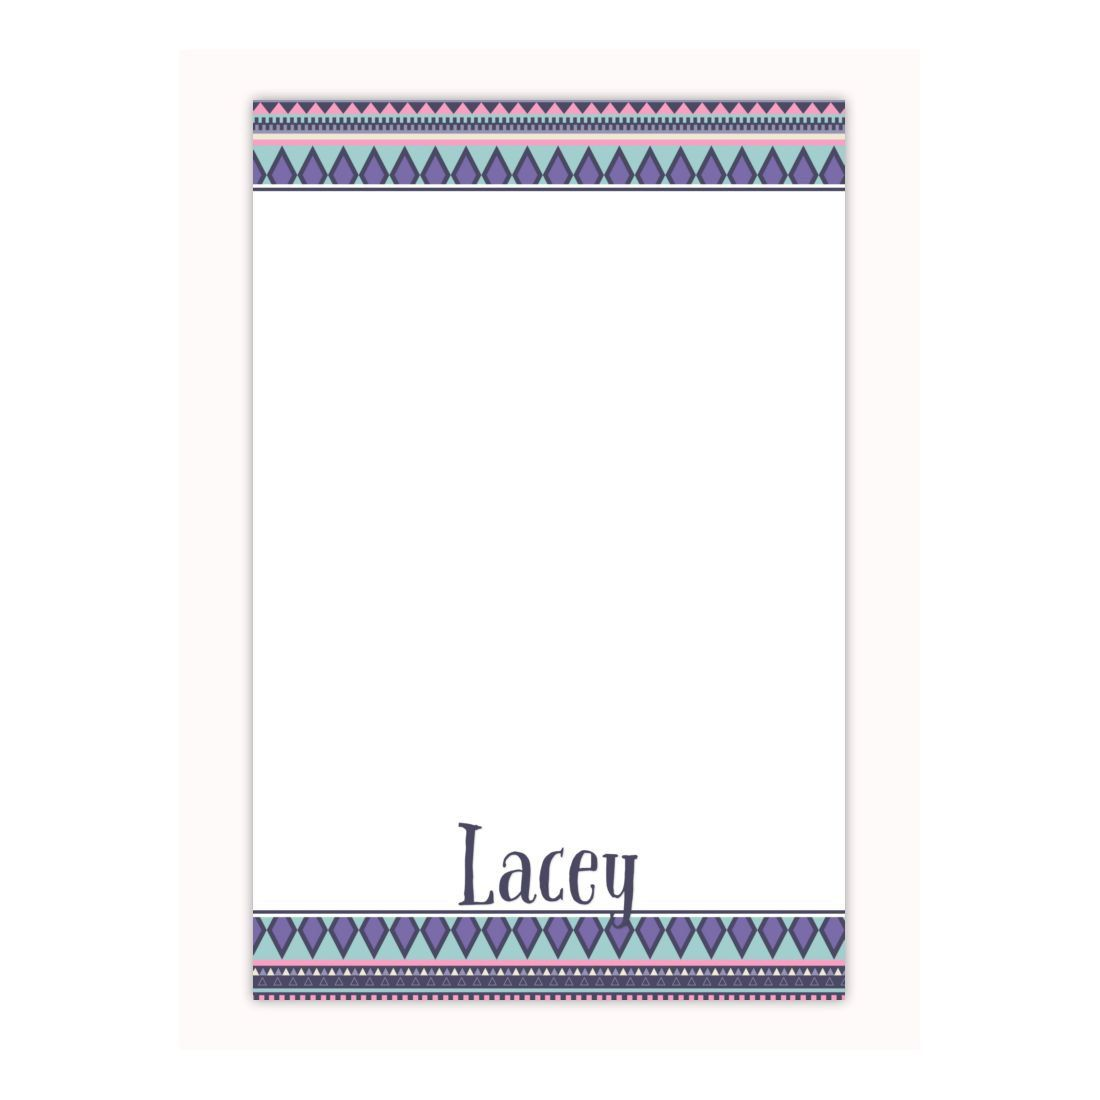 Personalized Notepad In Tribal Print Custom Notepad Memo Pad